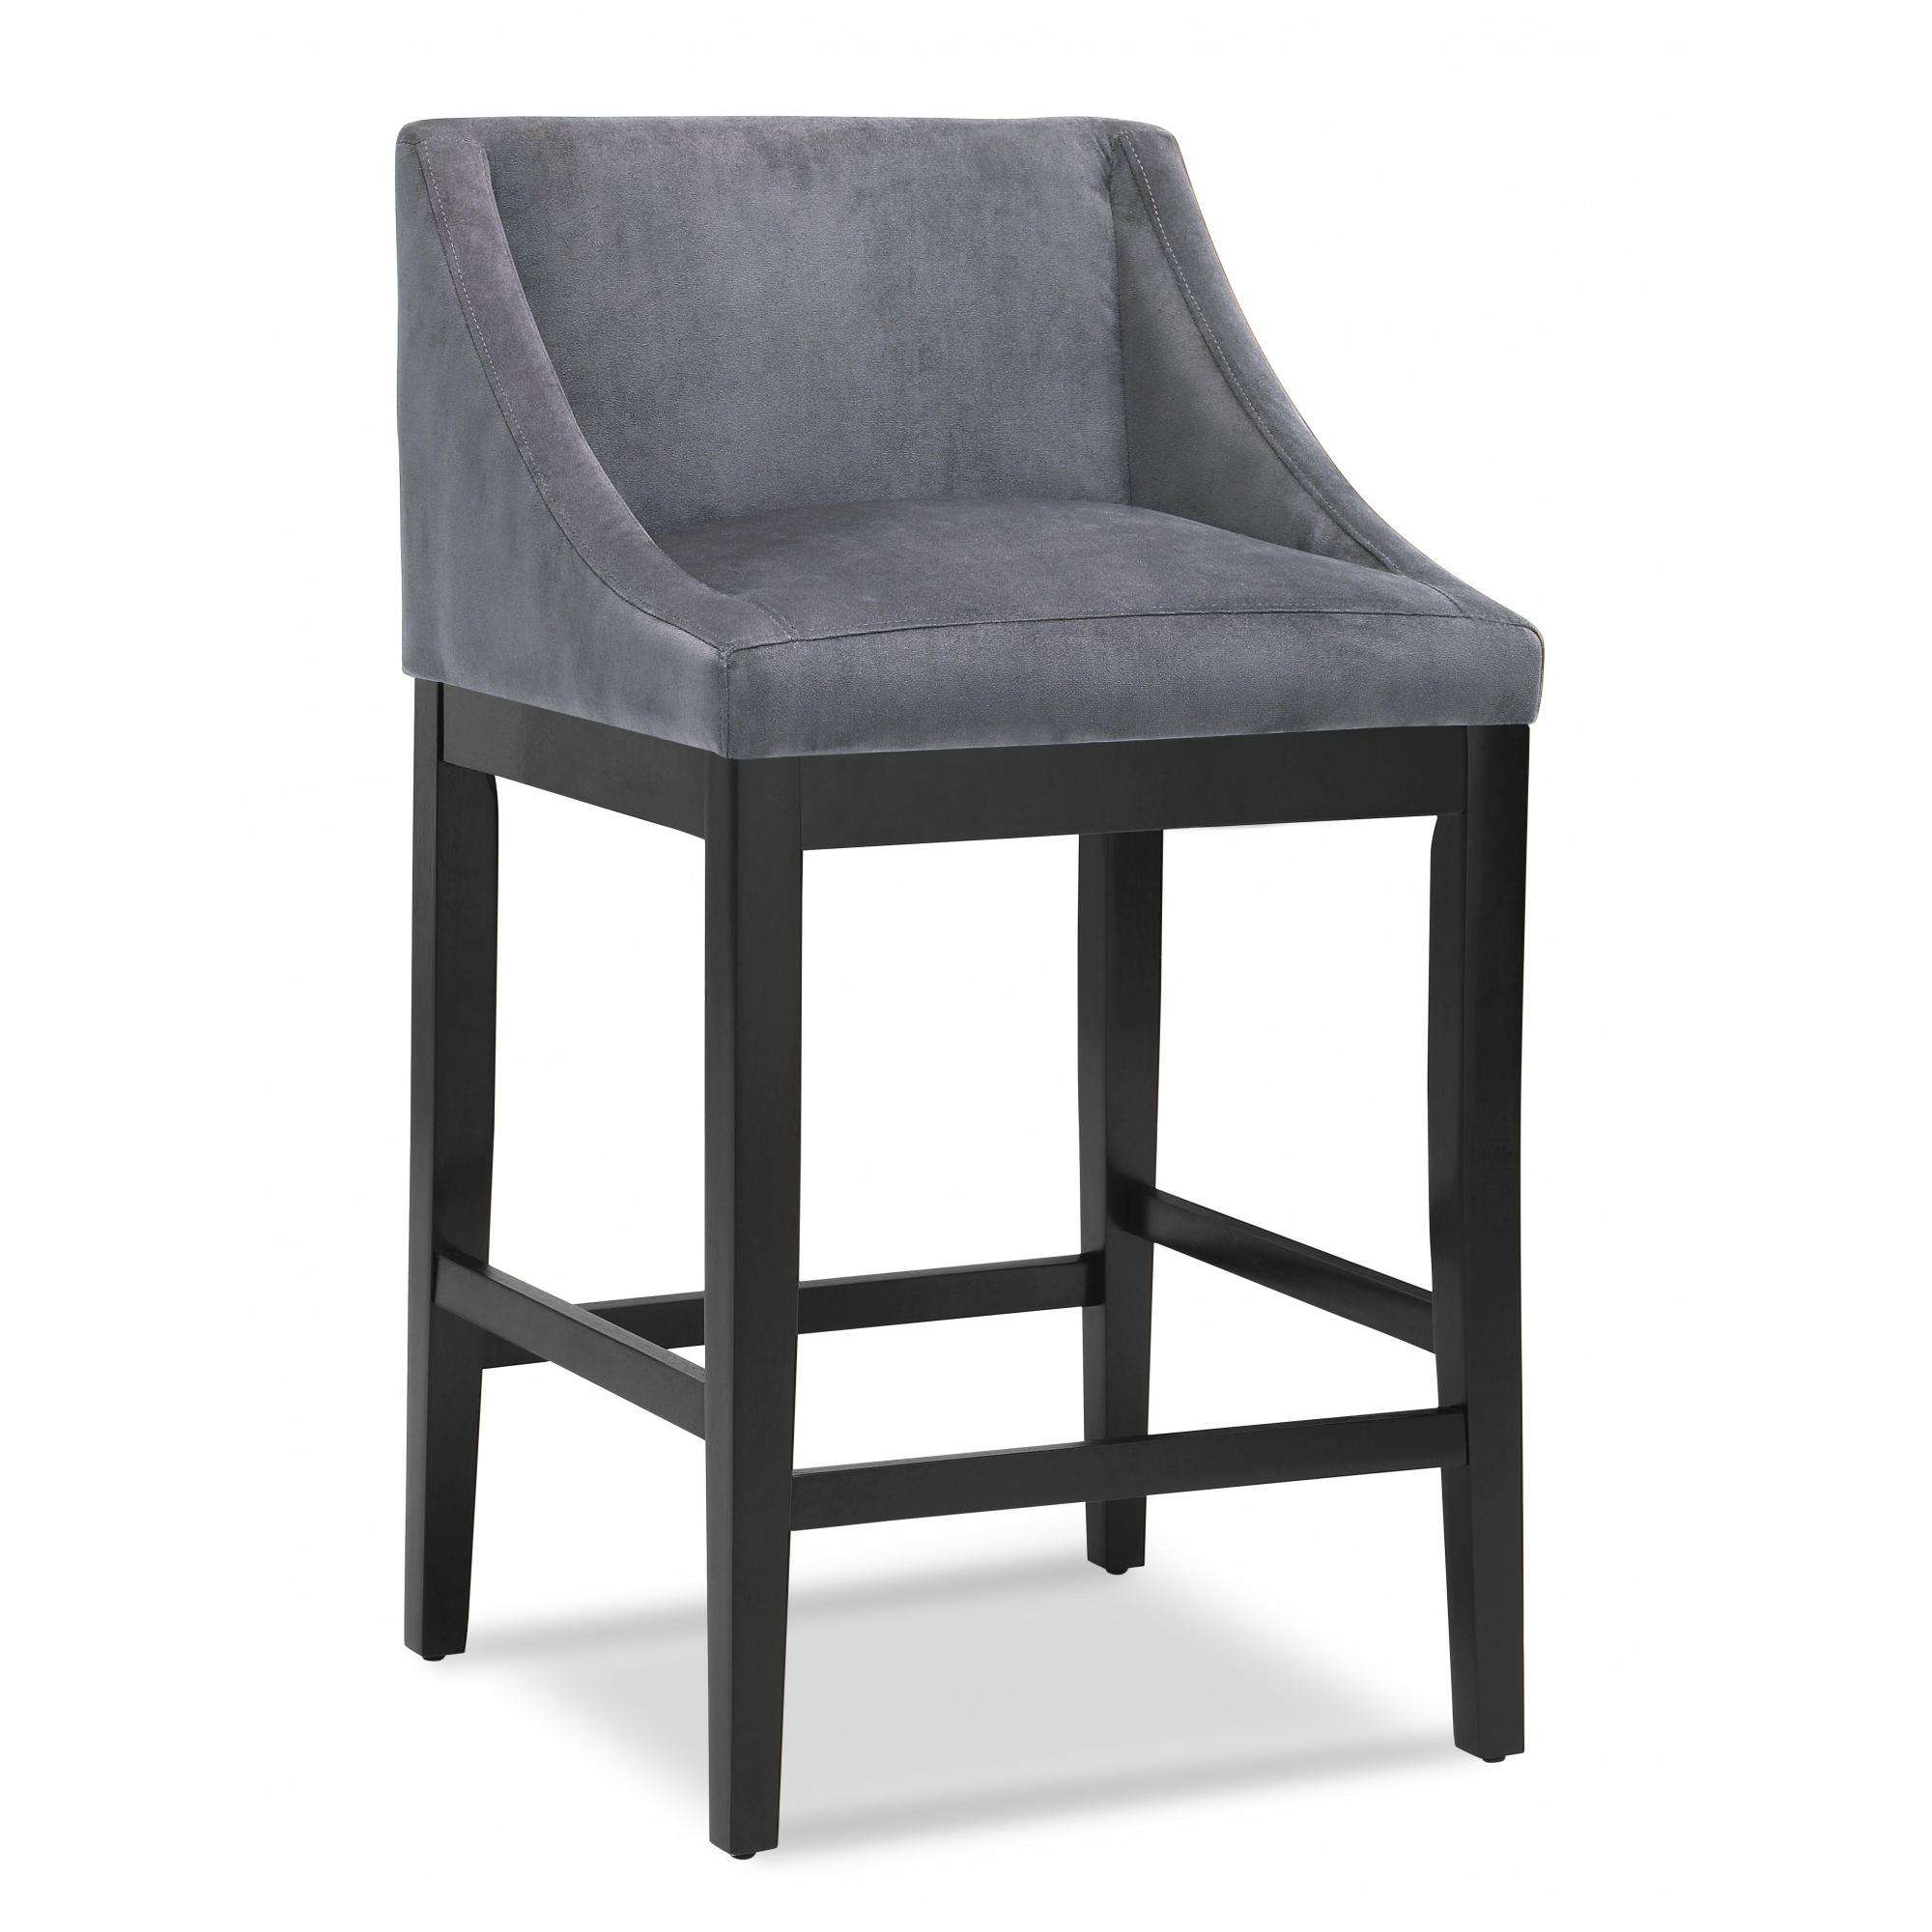 "DHI Oxford Swoop Back Upholstered 30"" Stool, Multiple Colors"